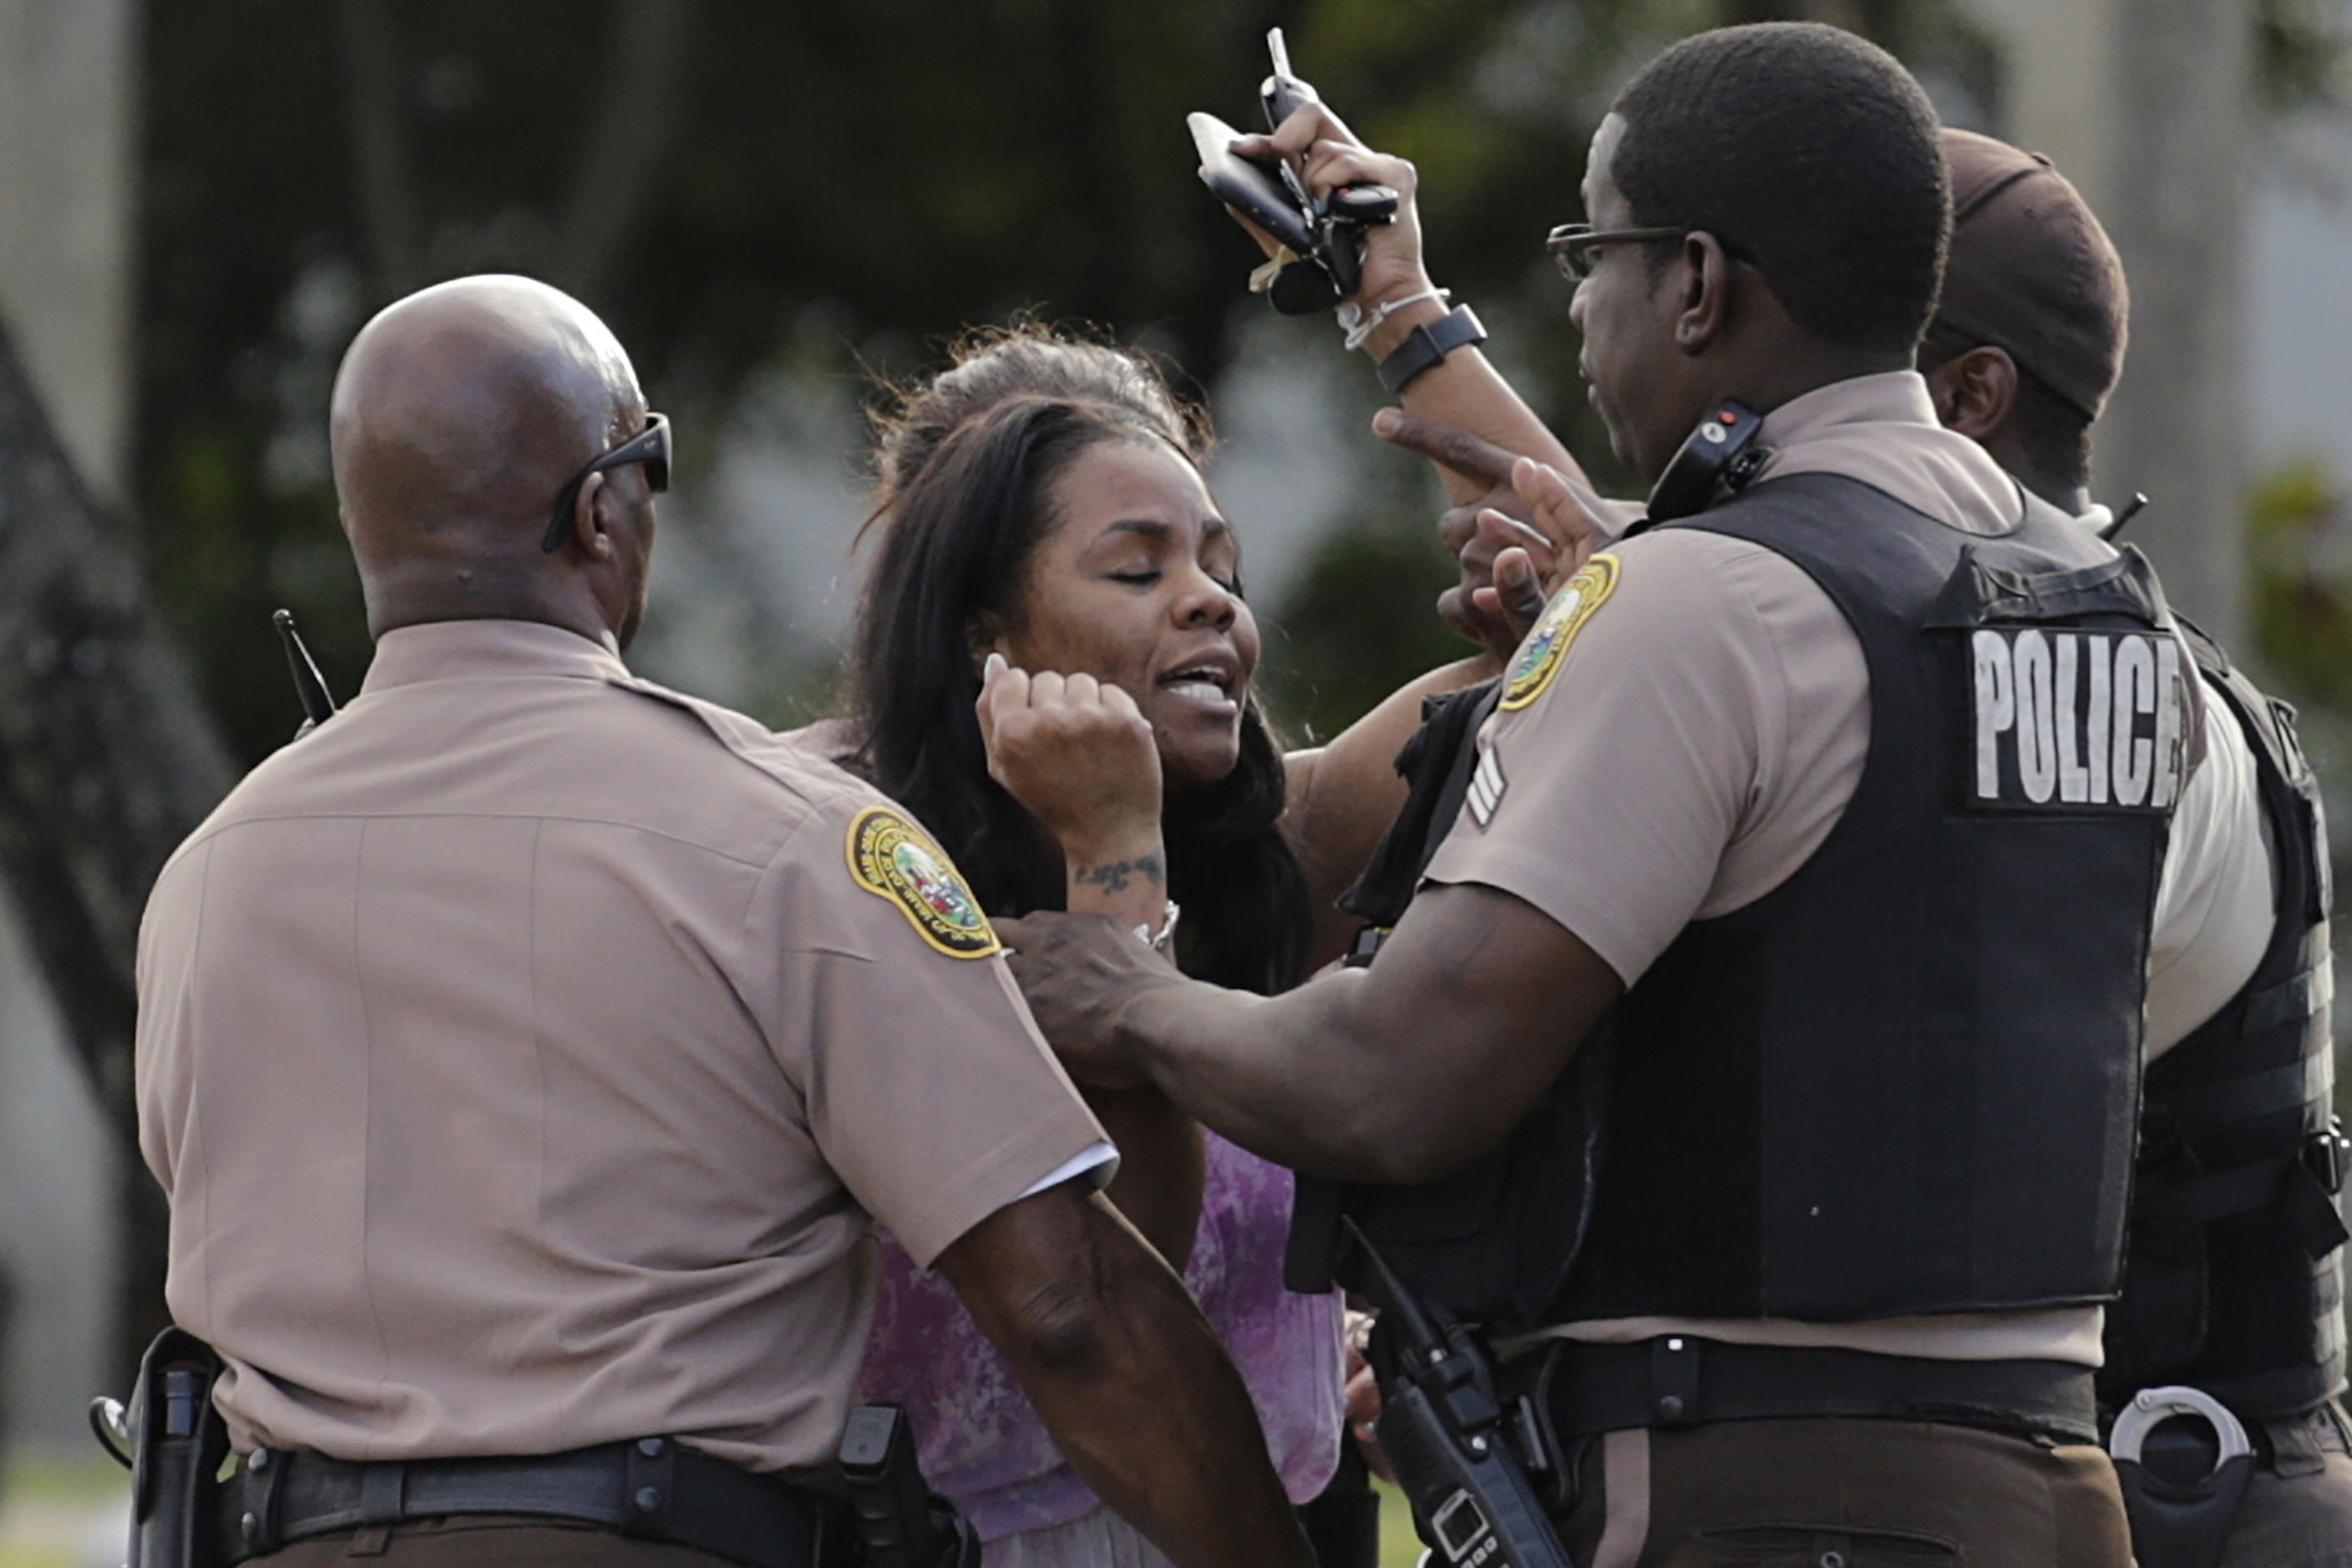 A concerned mother is met by Miami-Dade police officers as she searches for her child after several were injured in a shooting at Martin Luther King Jr. Memorial Park in Miami-Dade, Fla., on, Jan. 16, 2017.